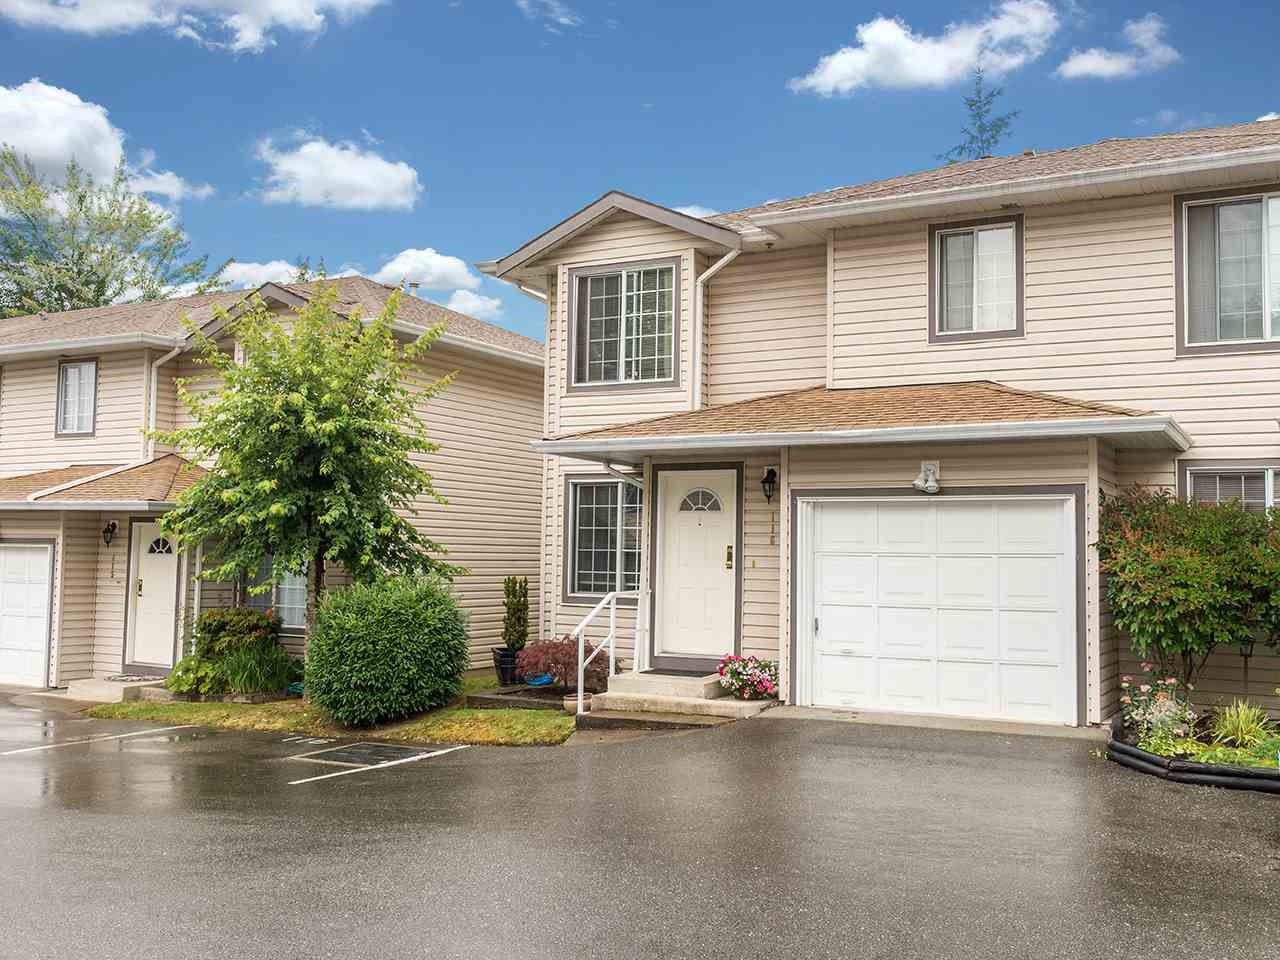 Main Photo: 116 9561 207 STREET in : Walnut Grove Townhouse for sale : MLS®# R2097433